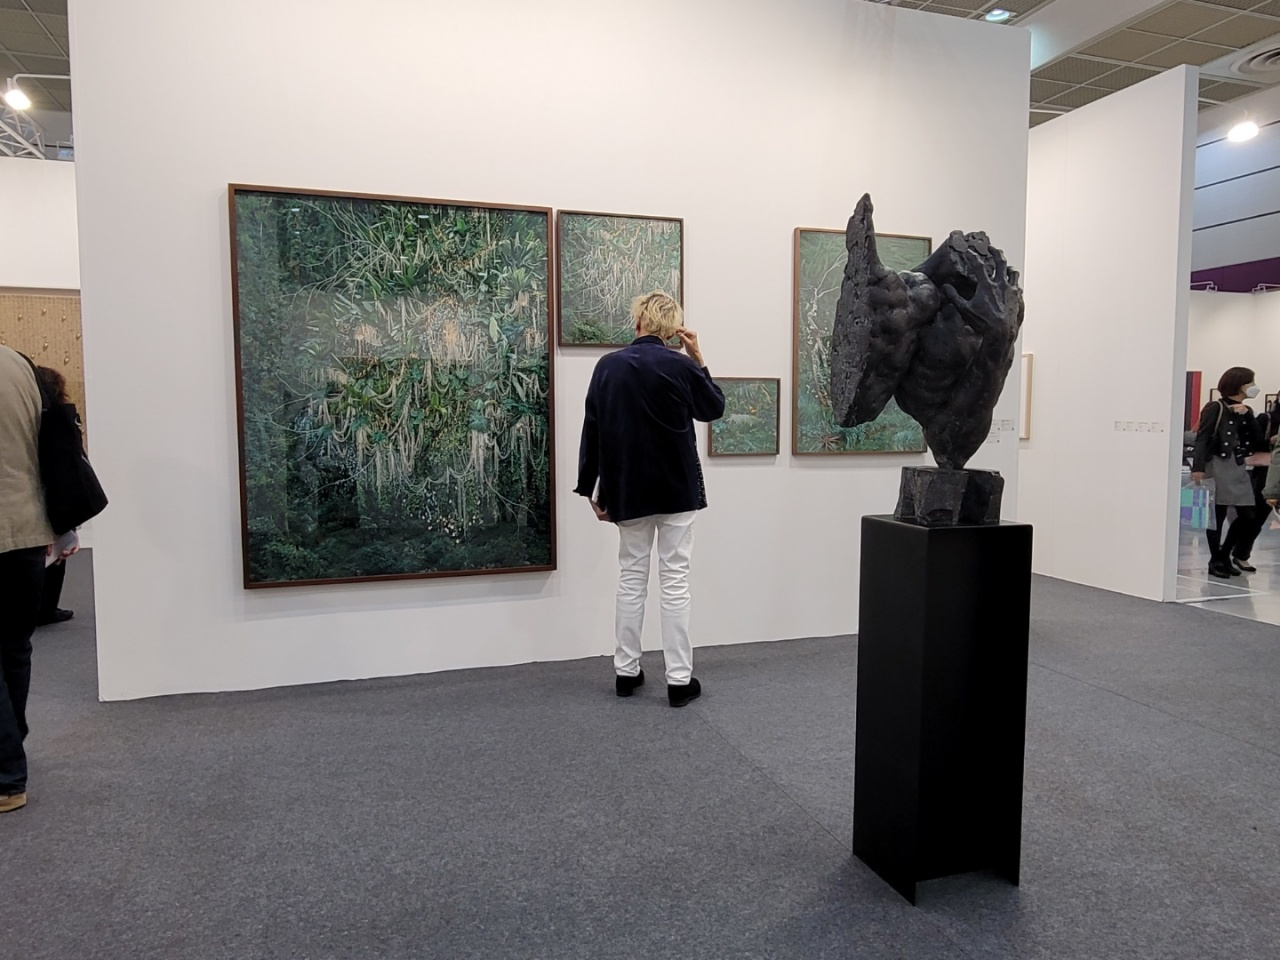 A visitor takes a look at artworks at the Arario Gallery booth. (Park Yuna/The Korea Herald)